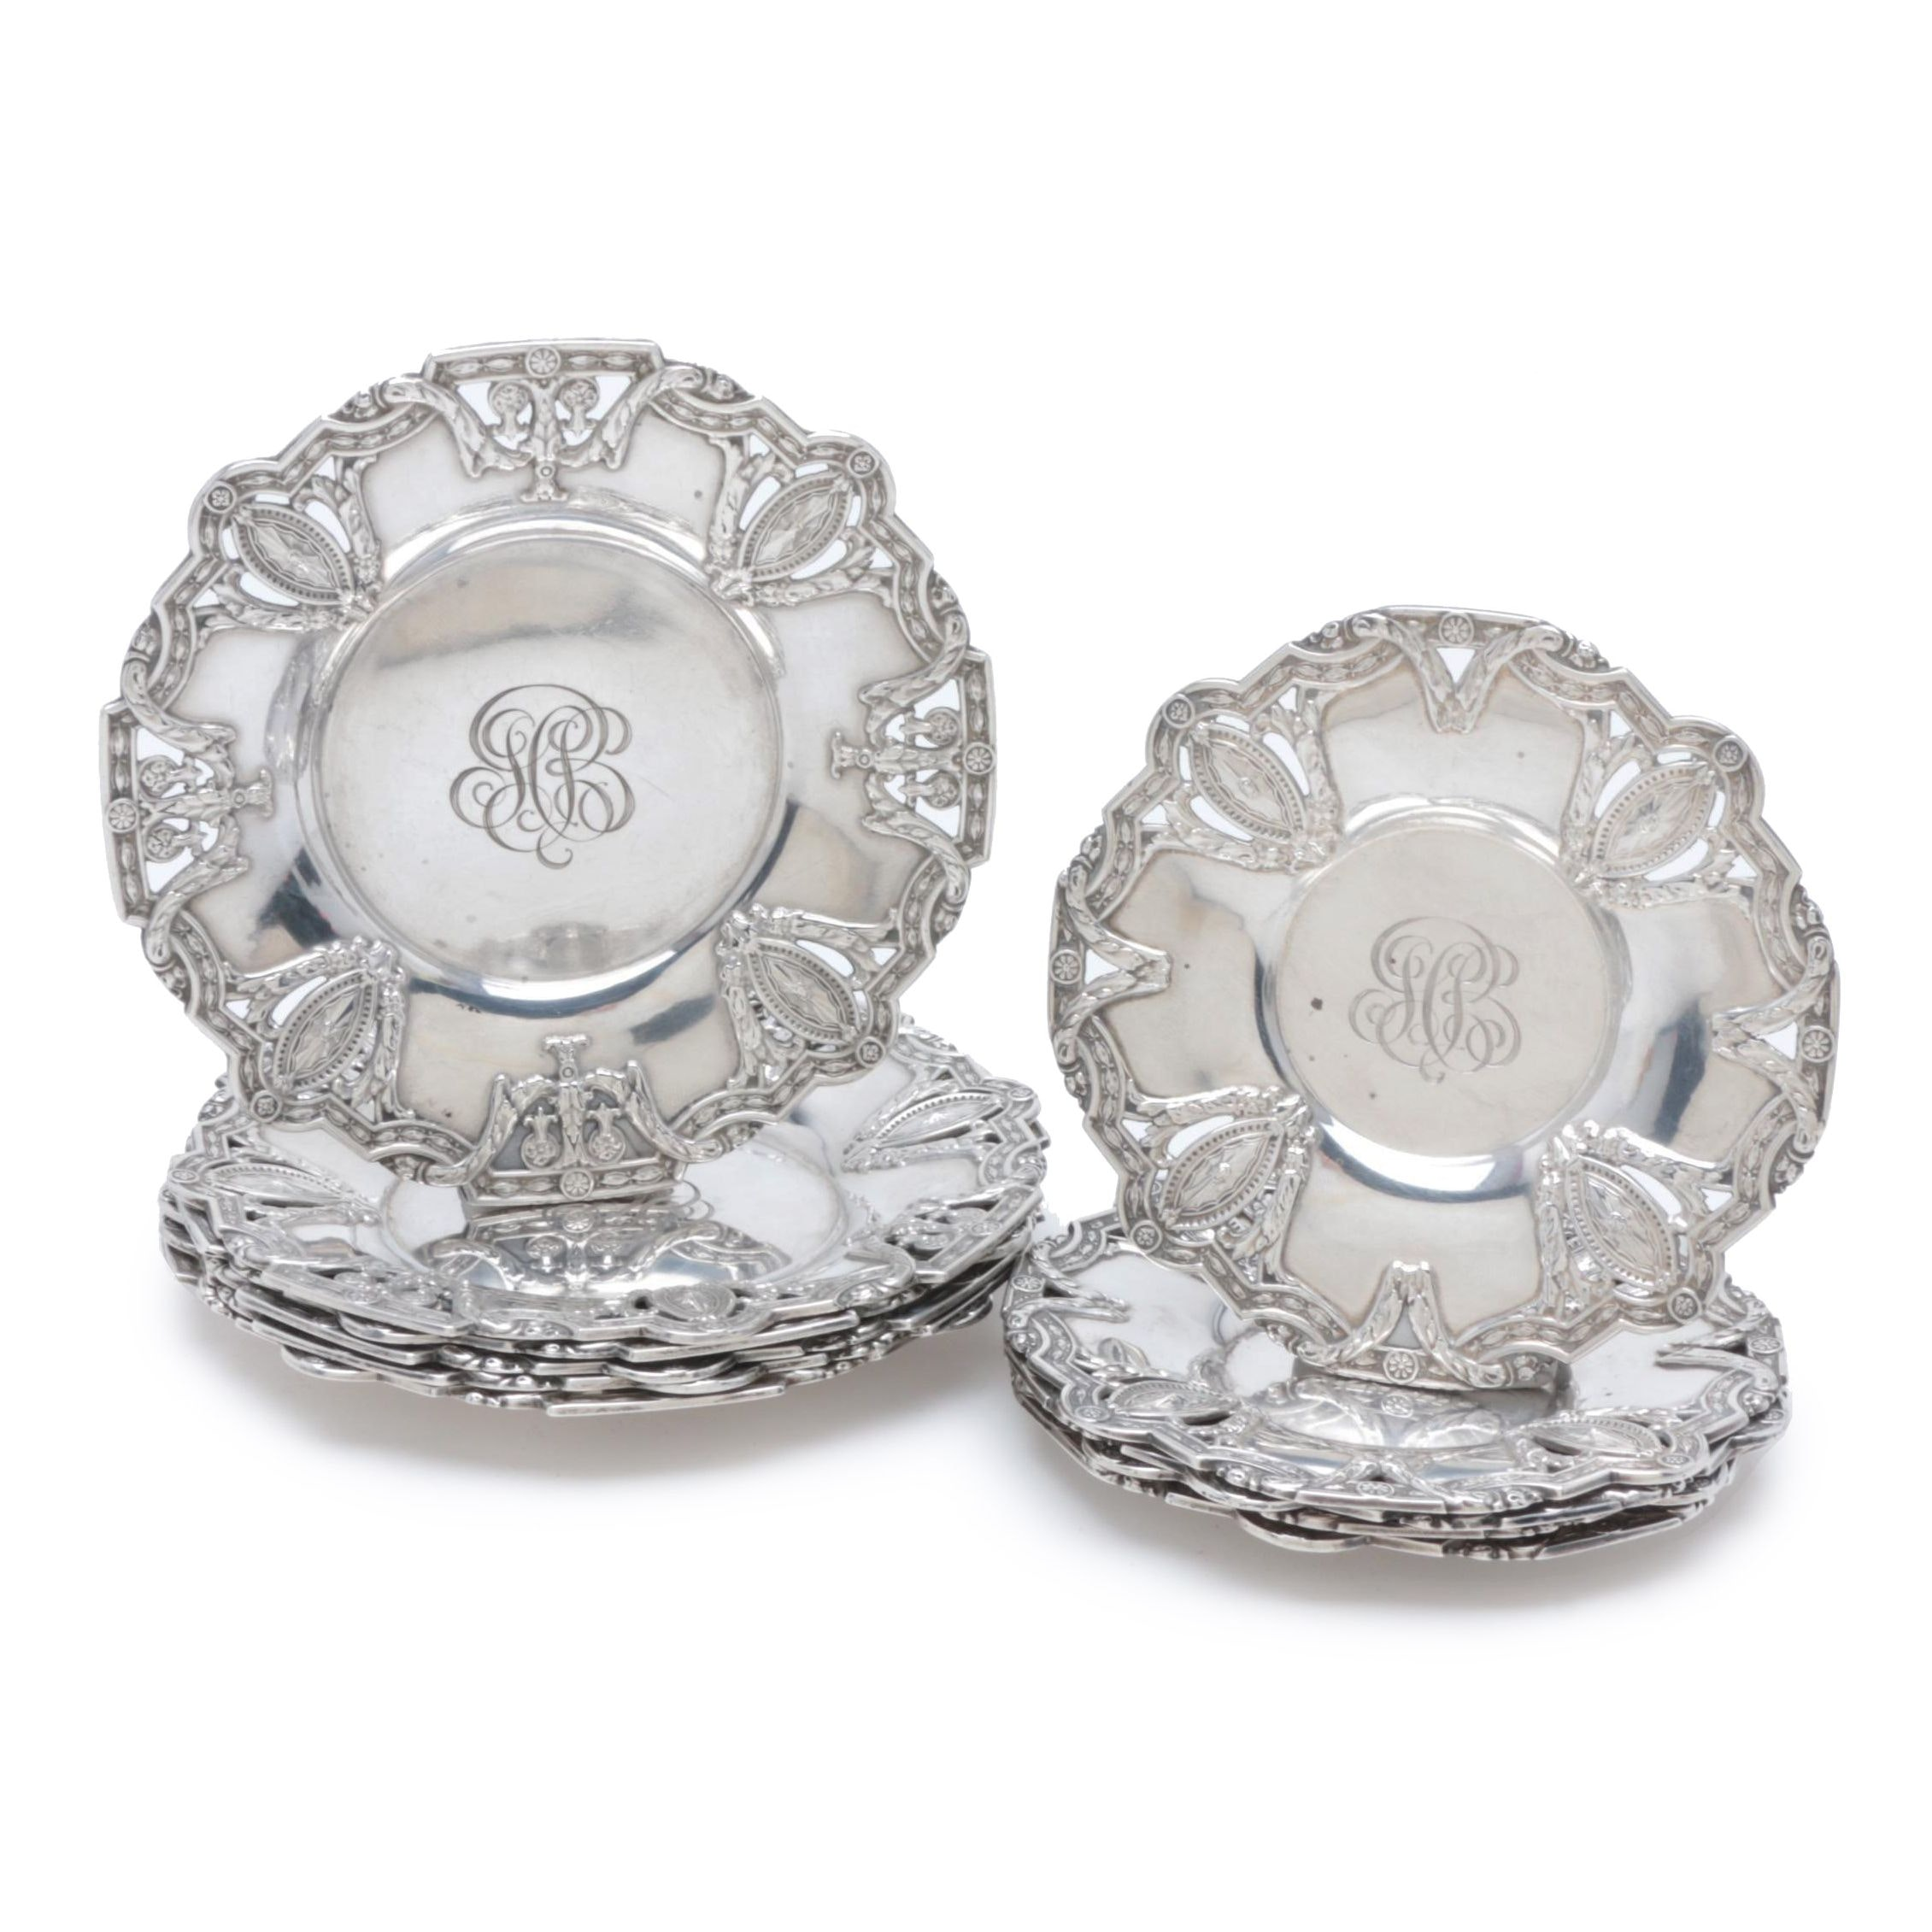 Dominick & Haff Pierced Sterling Silver Saucers, Late 19th Century